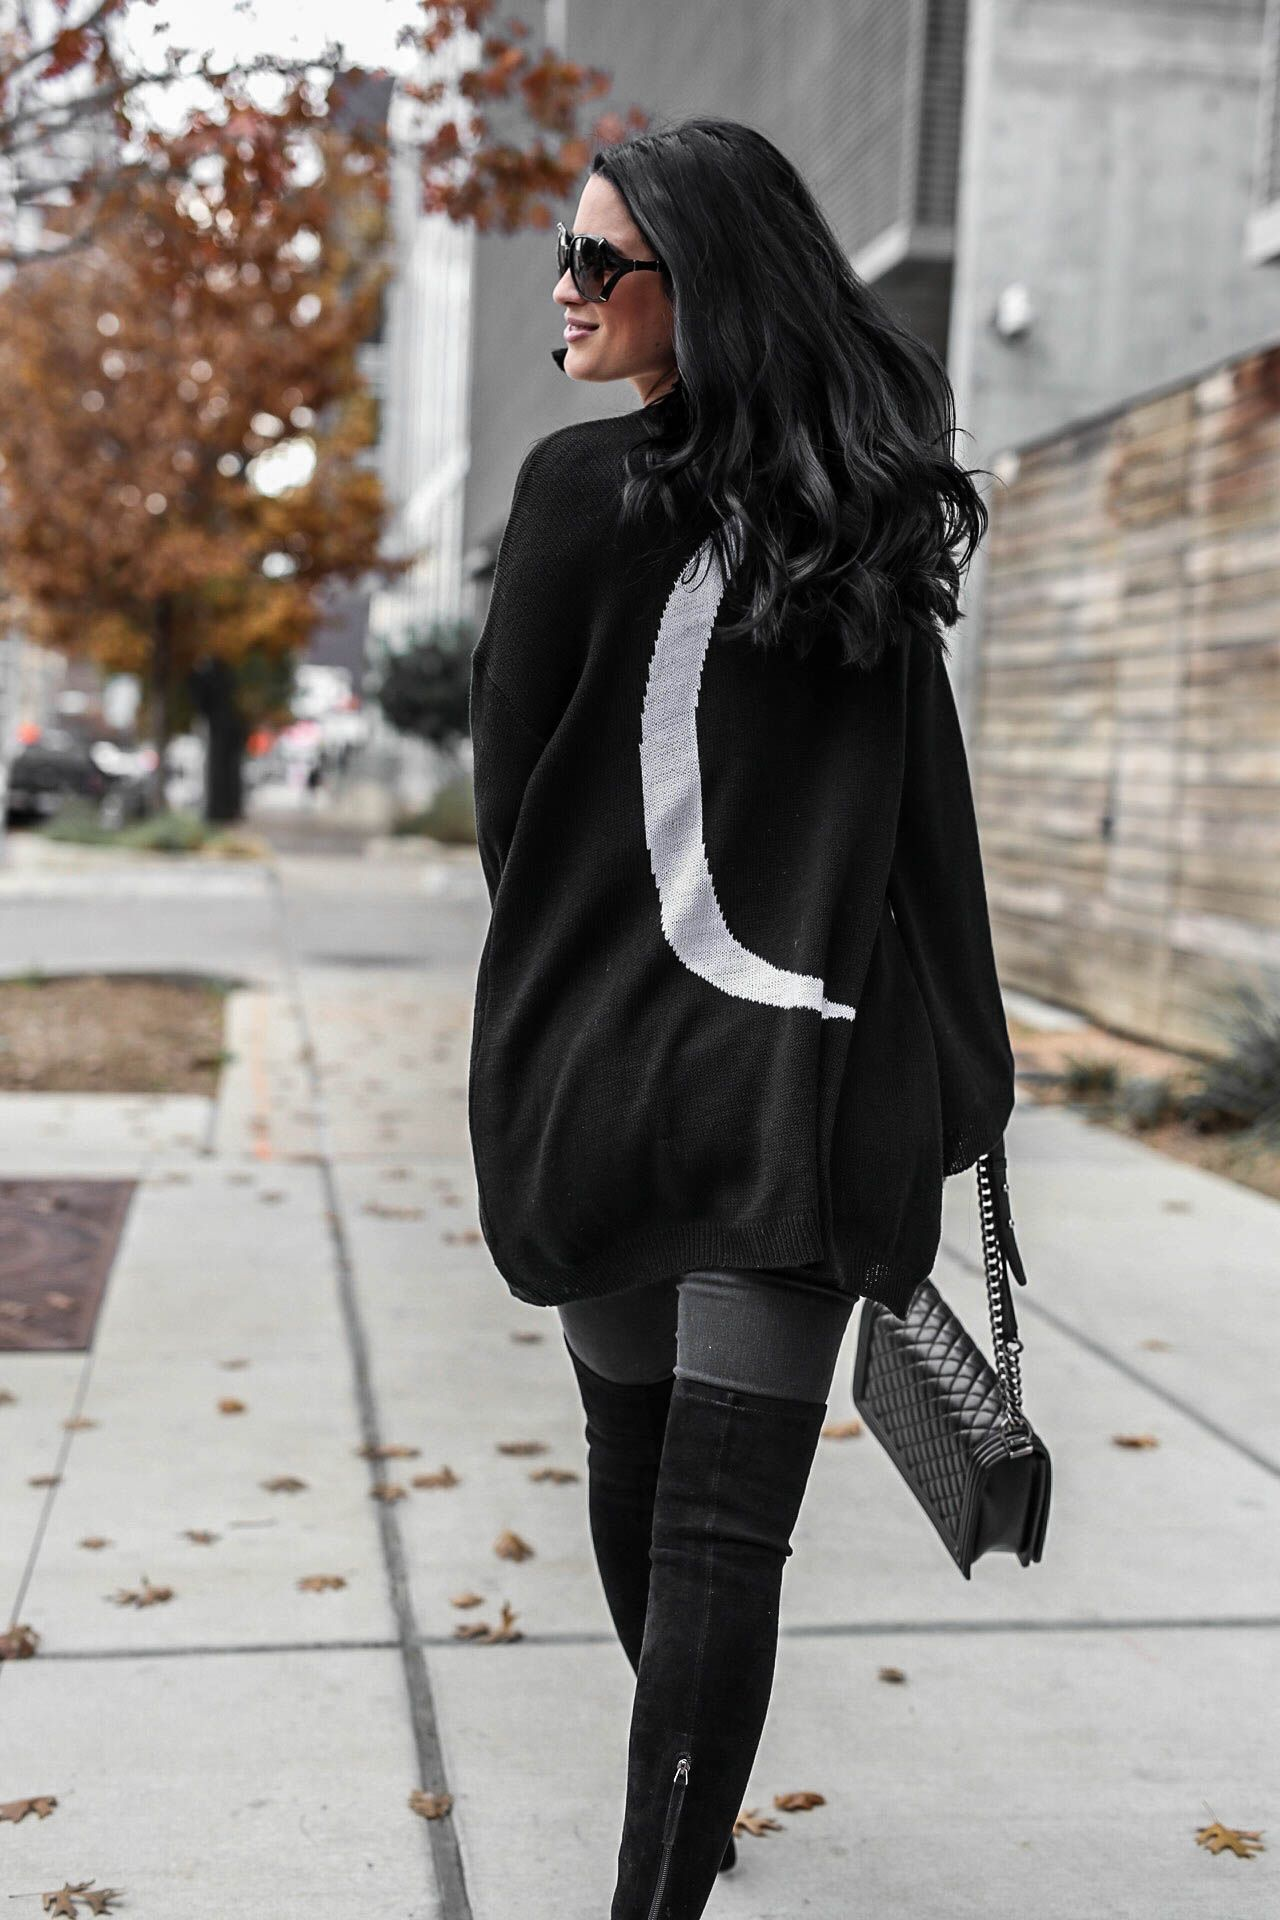 e8d6c9eebc40 ... off an all black look as well as why she has an affinity for stars and  moons. Cardigan from Show me Your Mumu.